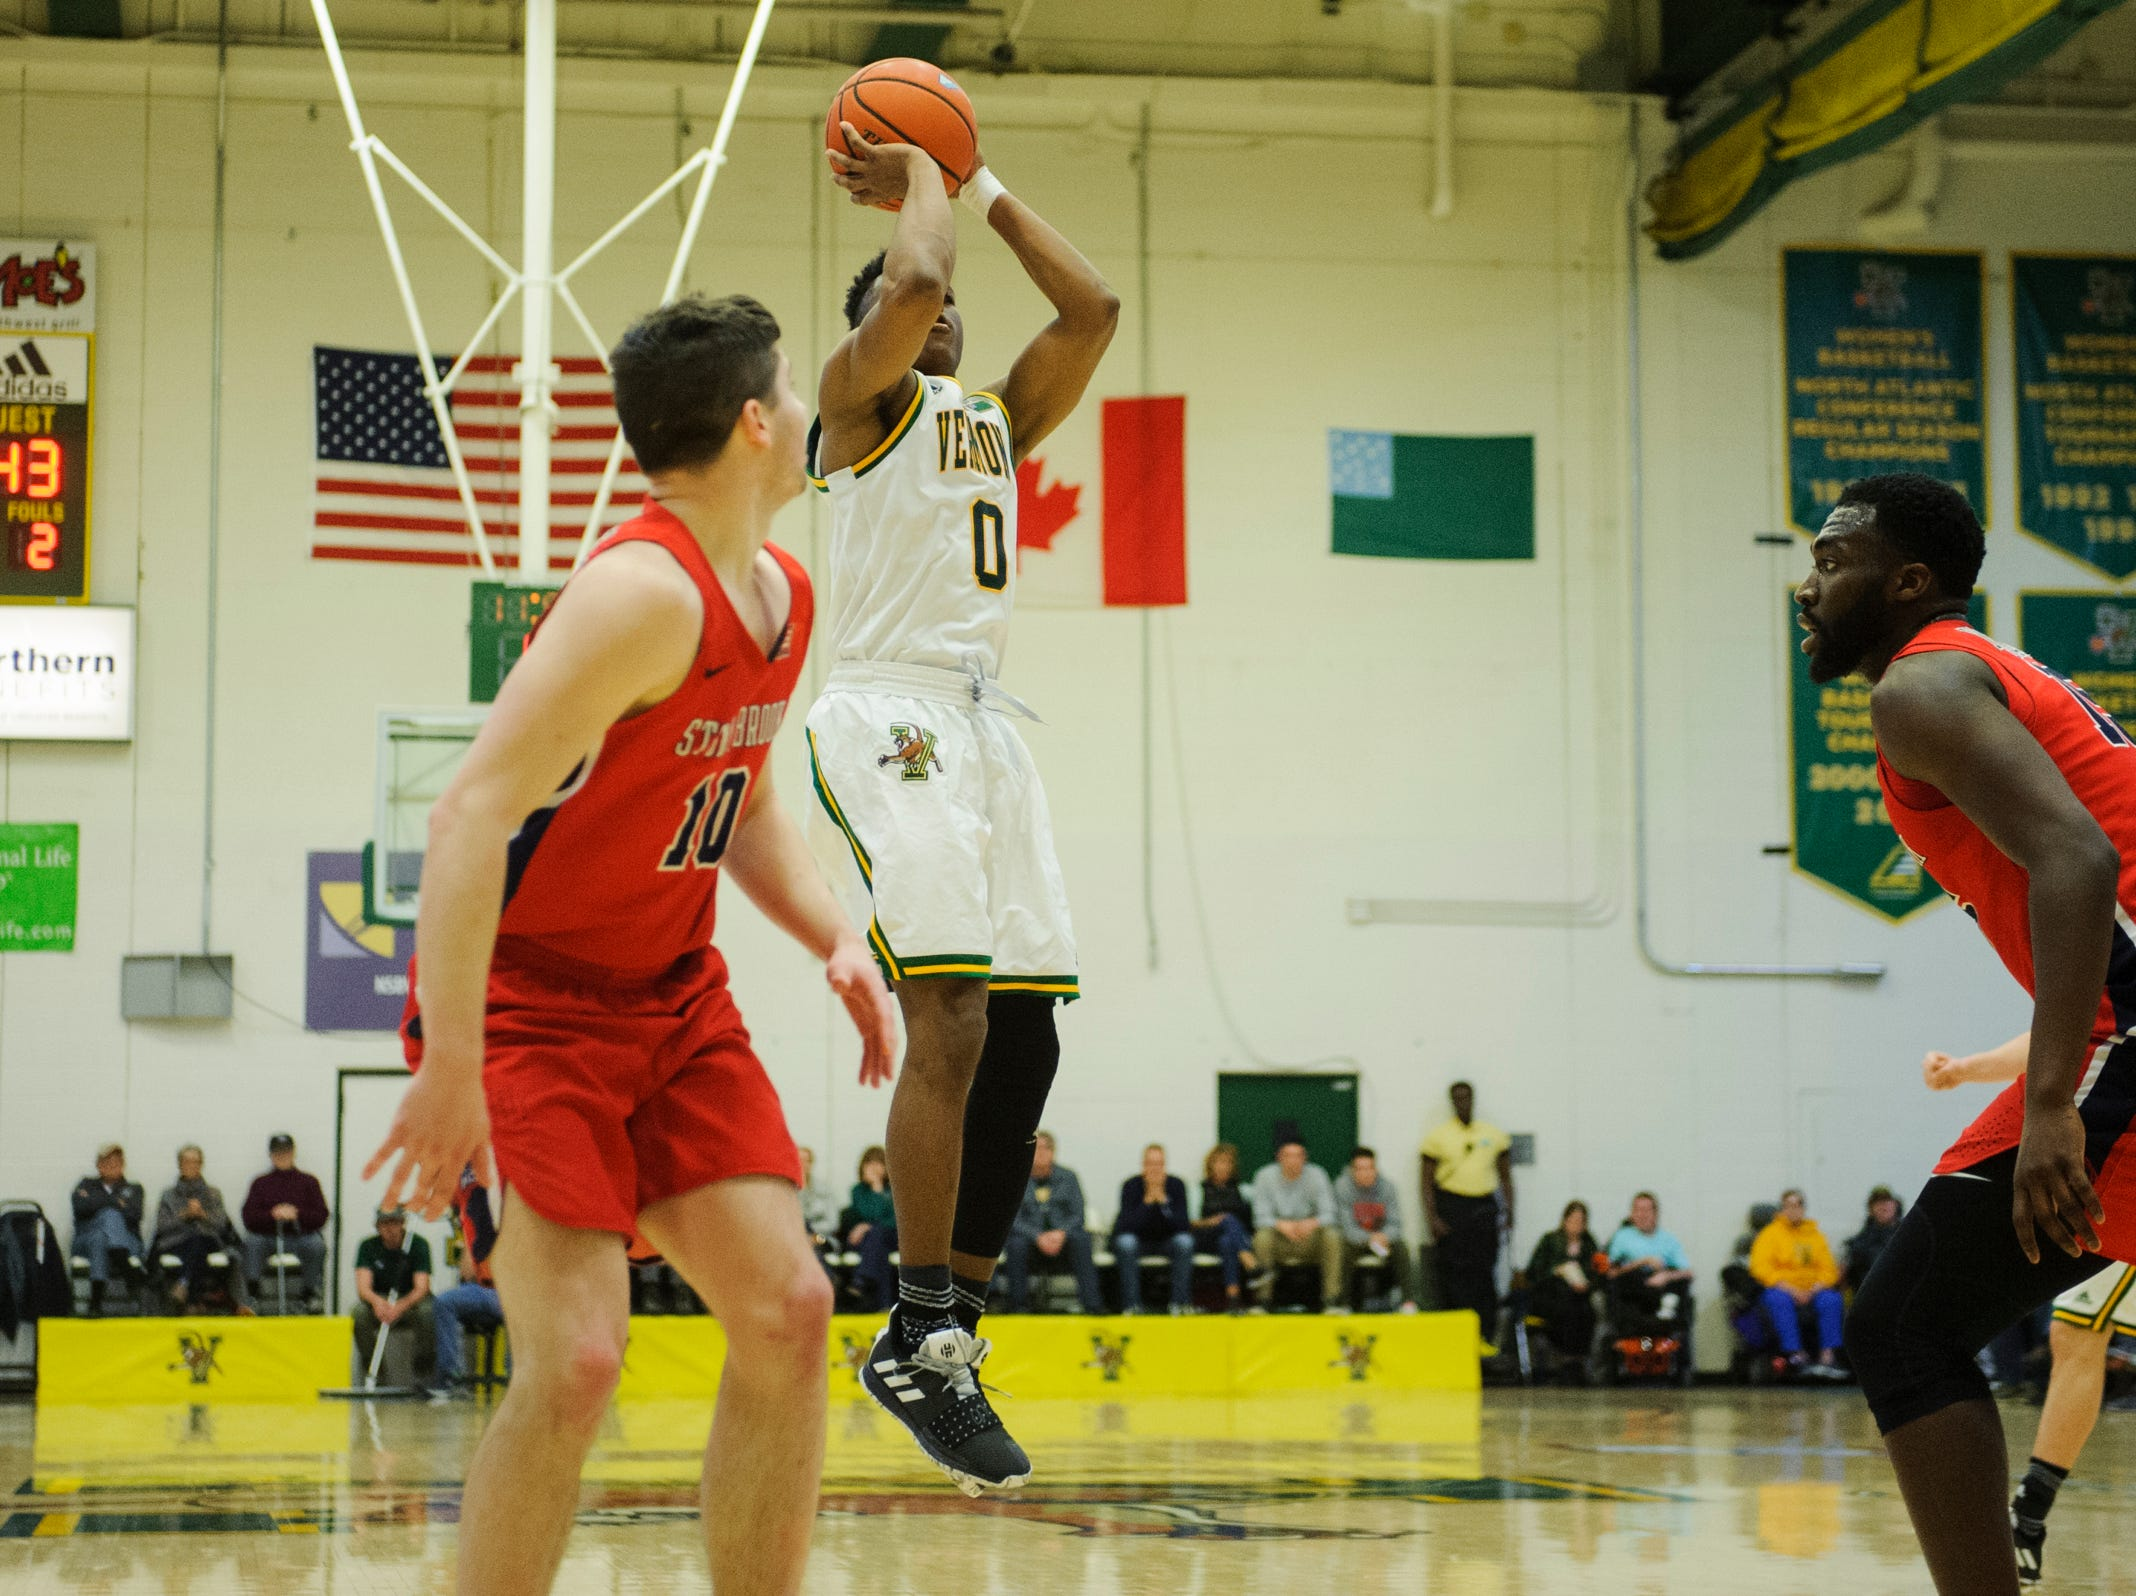 Vermont guard Stef Smith (0) shoots the ball during the men's basketball game between the Stony Brook Seawolves and the Vermont Catamounts at Patrick Gym on Saturday night March 2, 2019 in Burlington, Vermont.